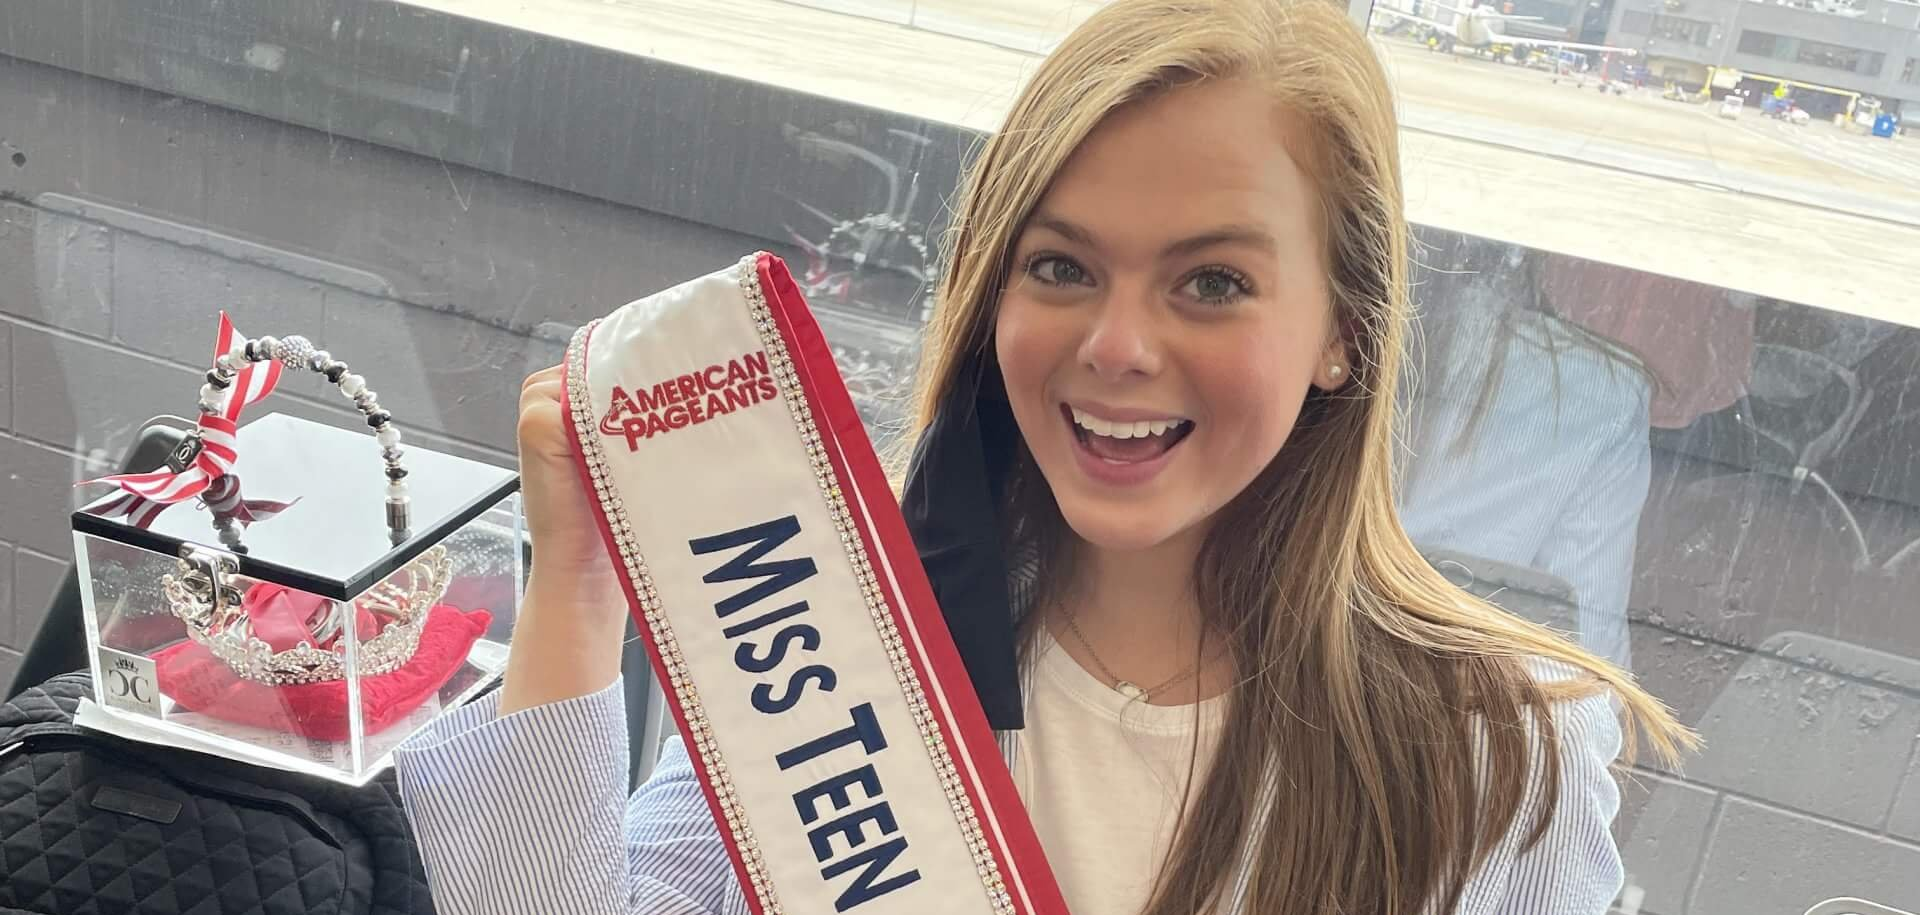 Acworth Teen's Reign Has Been a Busy One